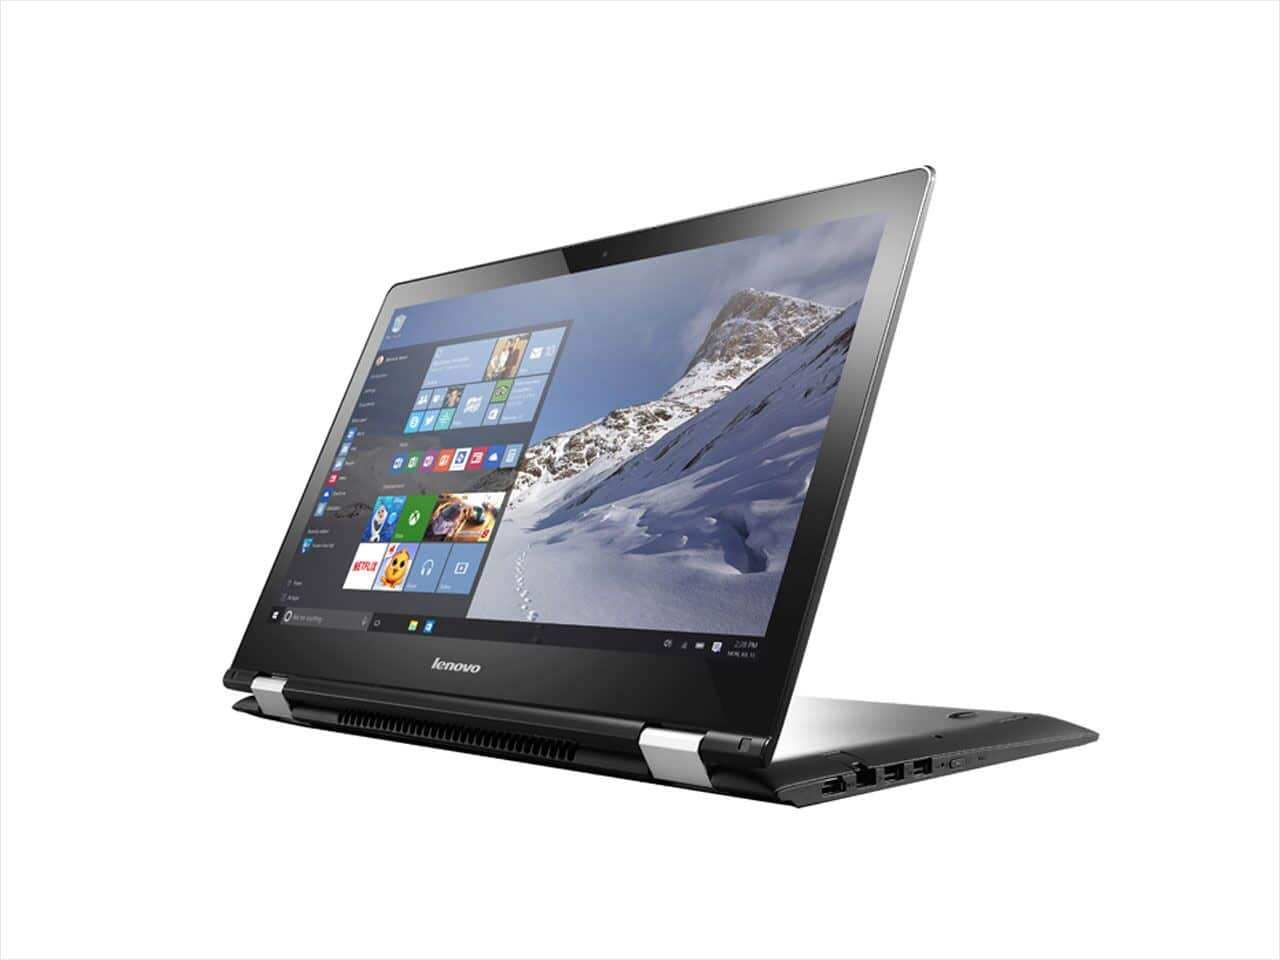 "Lenovo Flex 3 2-in-1 Convertible laptop Intel Core i5-6200U (2.30 GHz) 8 GB Memory 1 TB HDD 15.6"" Touchscreen Windows 10 Home $500 FS neweggflash"